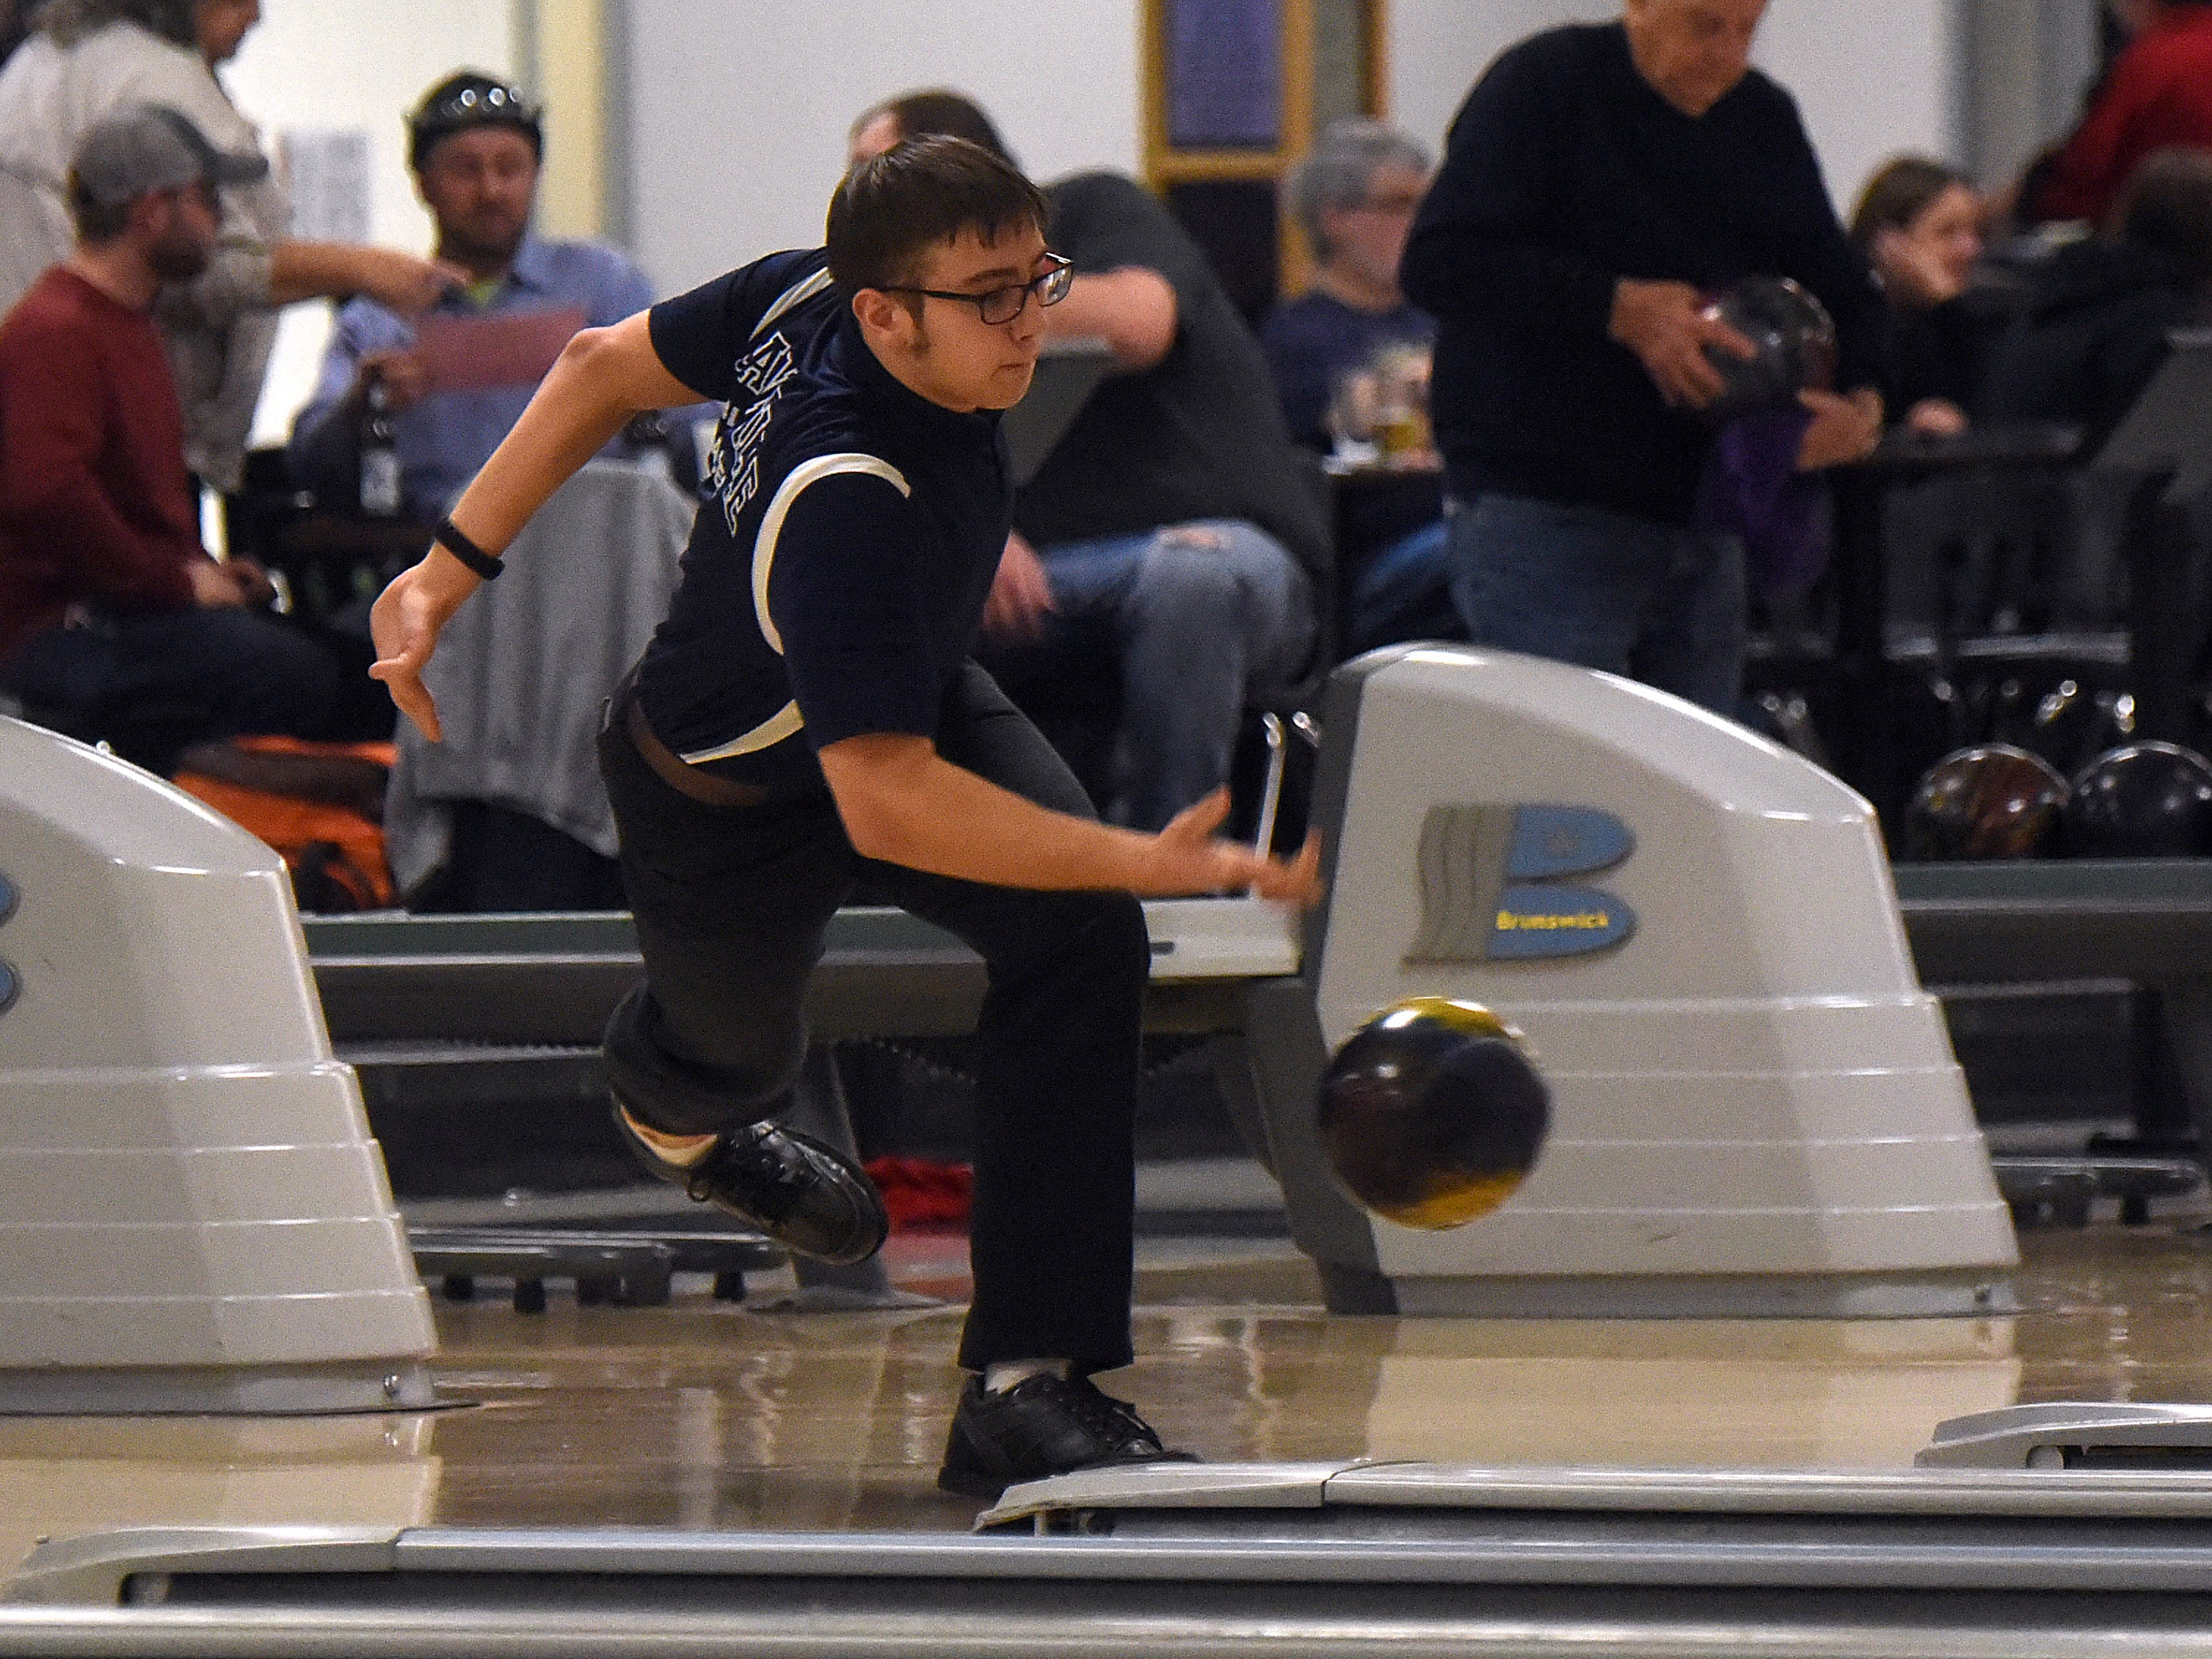 Granville junior Eric Stickley bowls with the Blue Aces' bowling team against Granville in an LCL match on Thursday, Jan. 17, 2019, at Park Lanes in Heath.